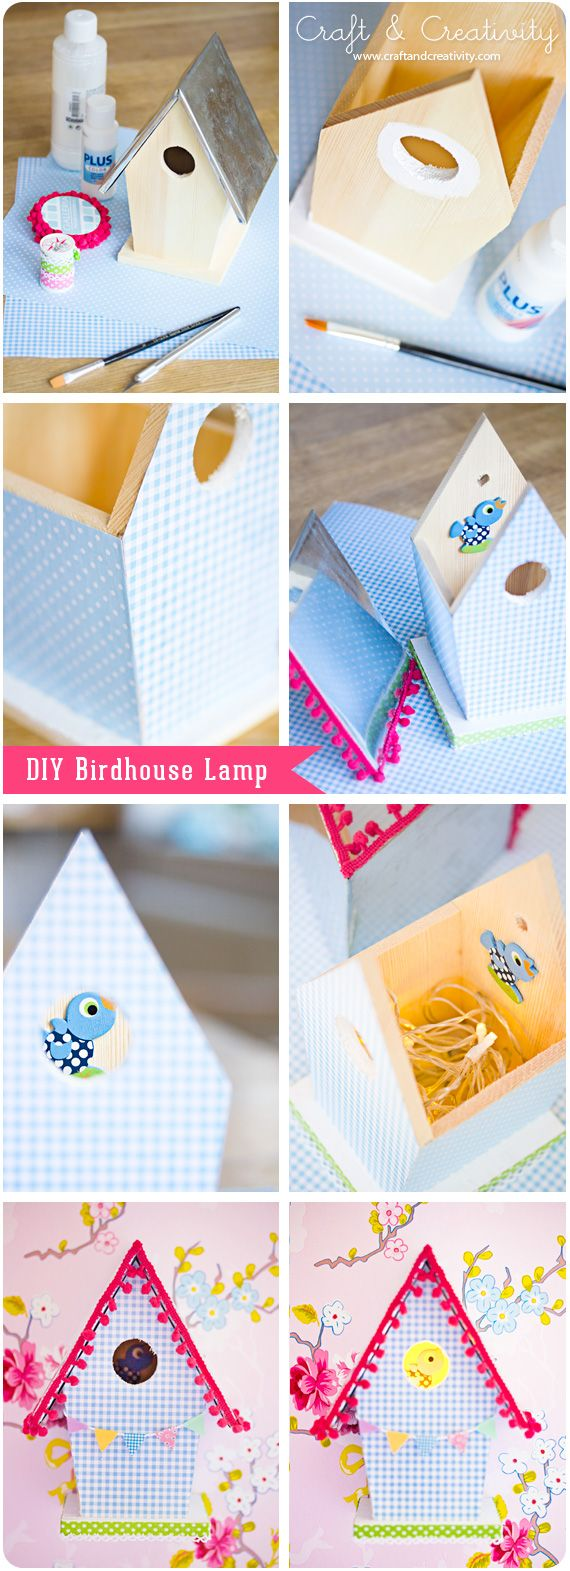 Night lights baby bunting - Diy Birdhouse Lamp With A Washi Tape Bunting